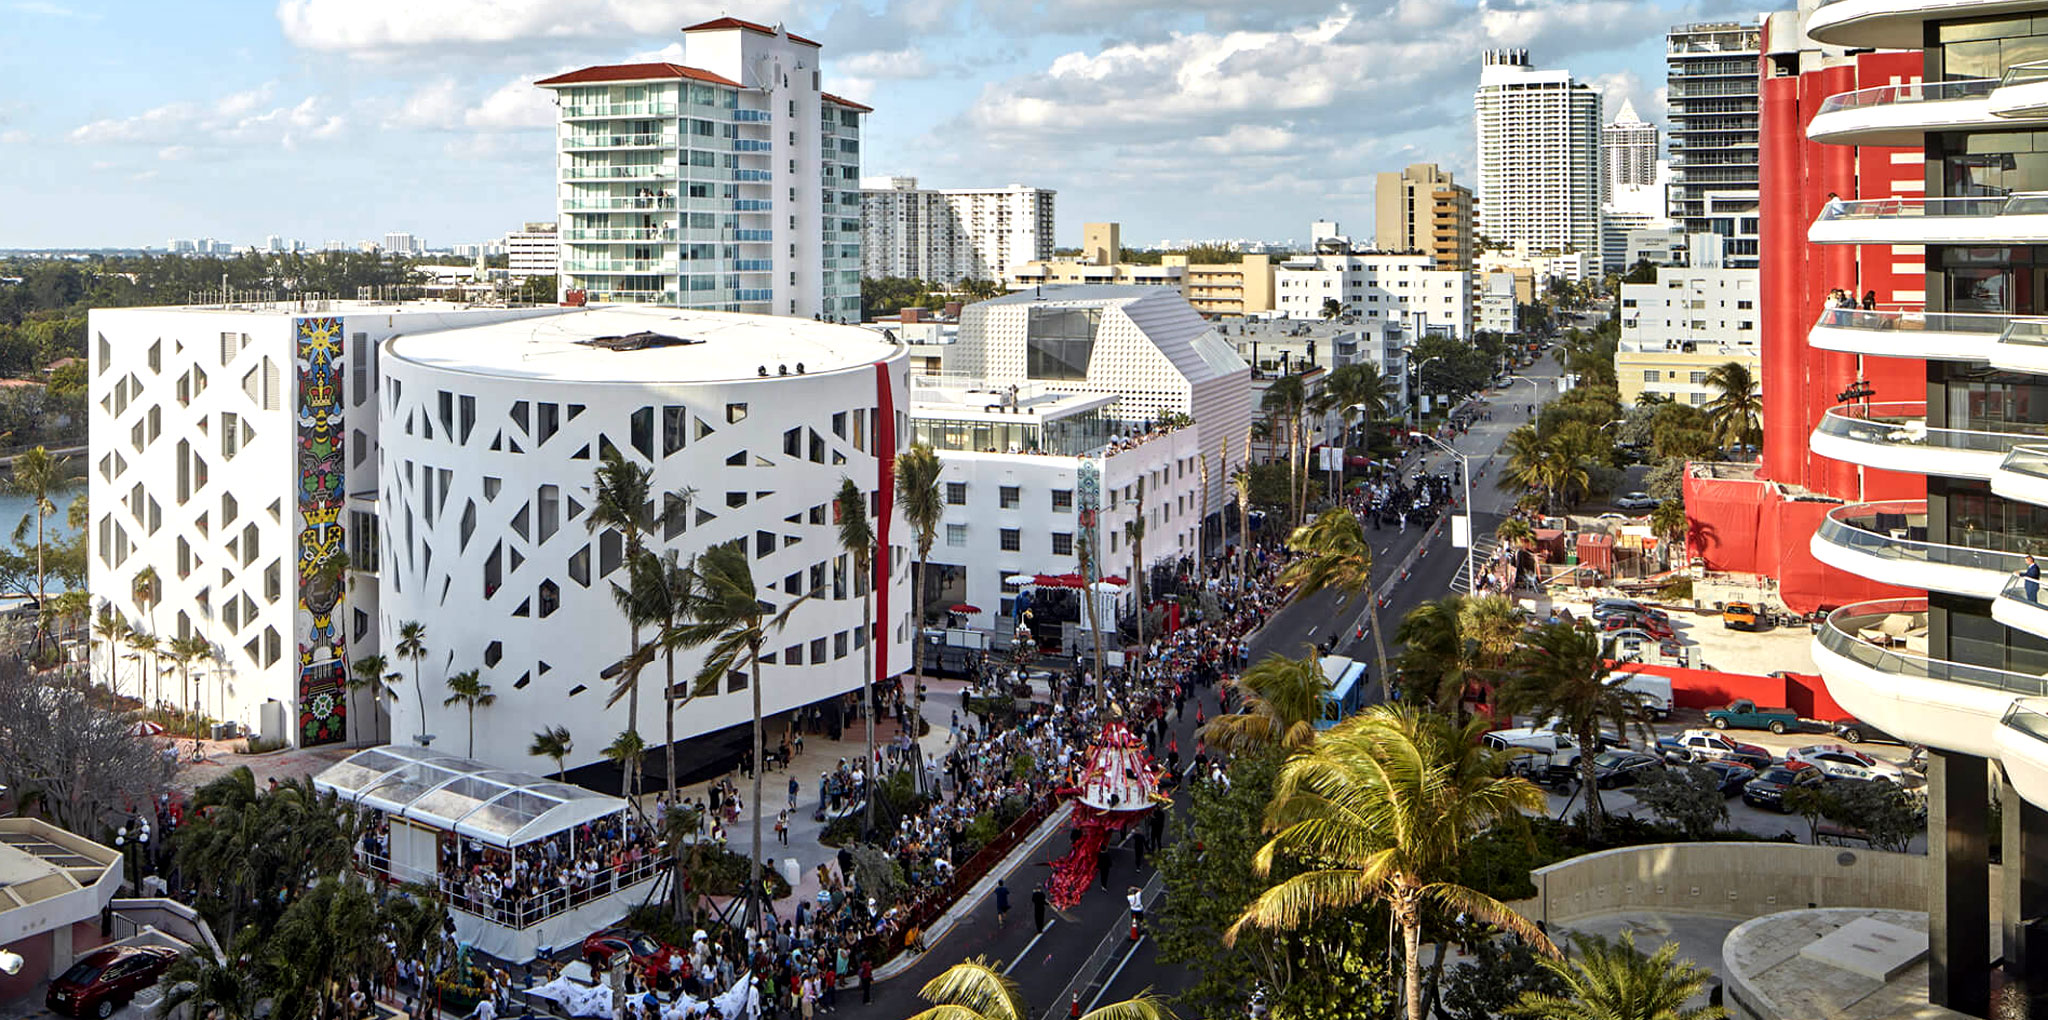 34th Annual Winter Music Conference at Faena District to kick off Miami Music Week Image